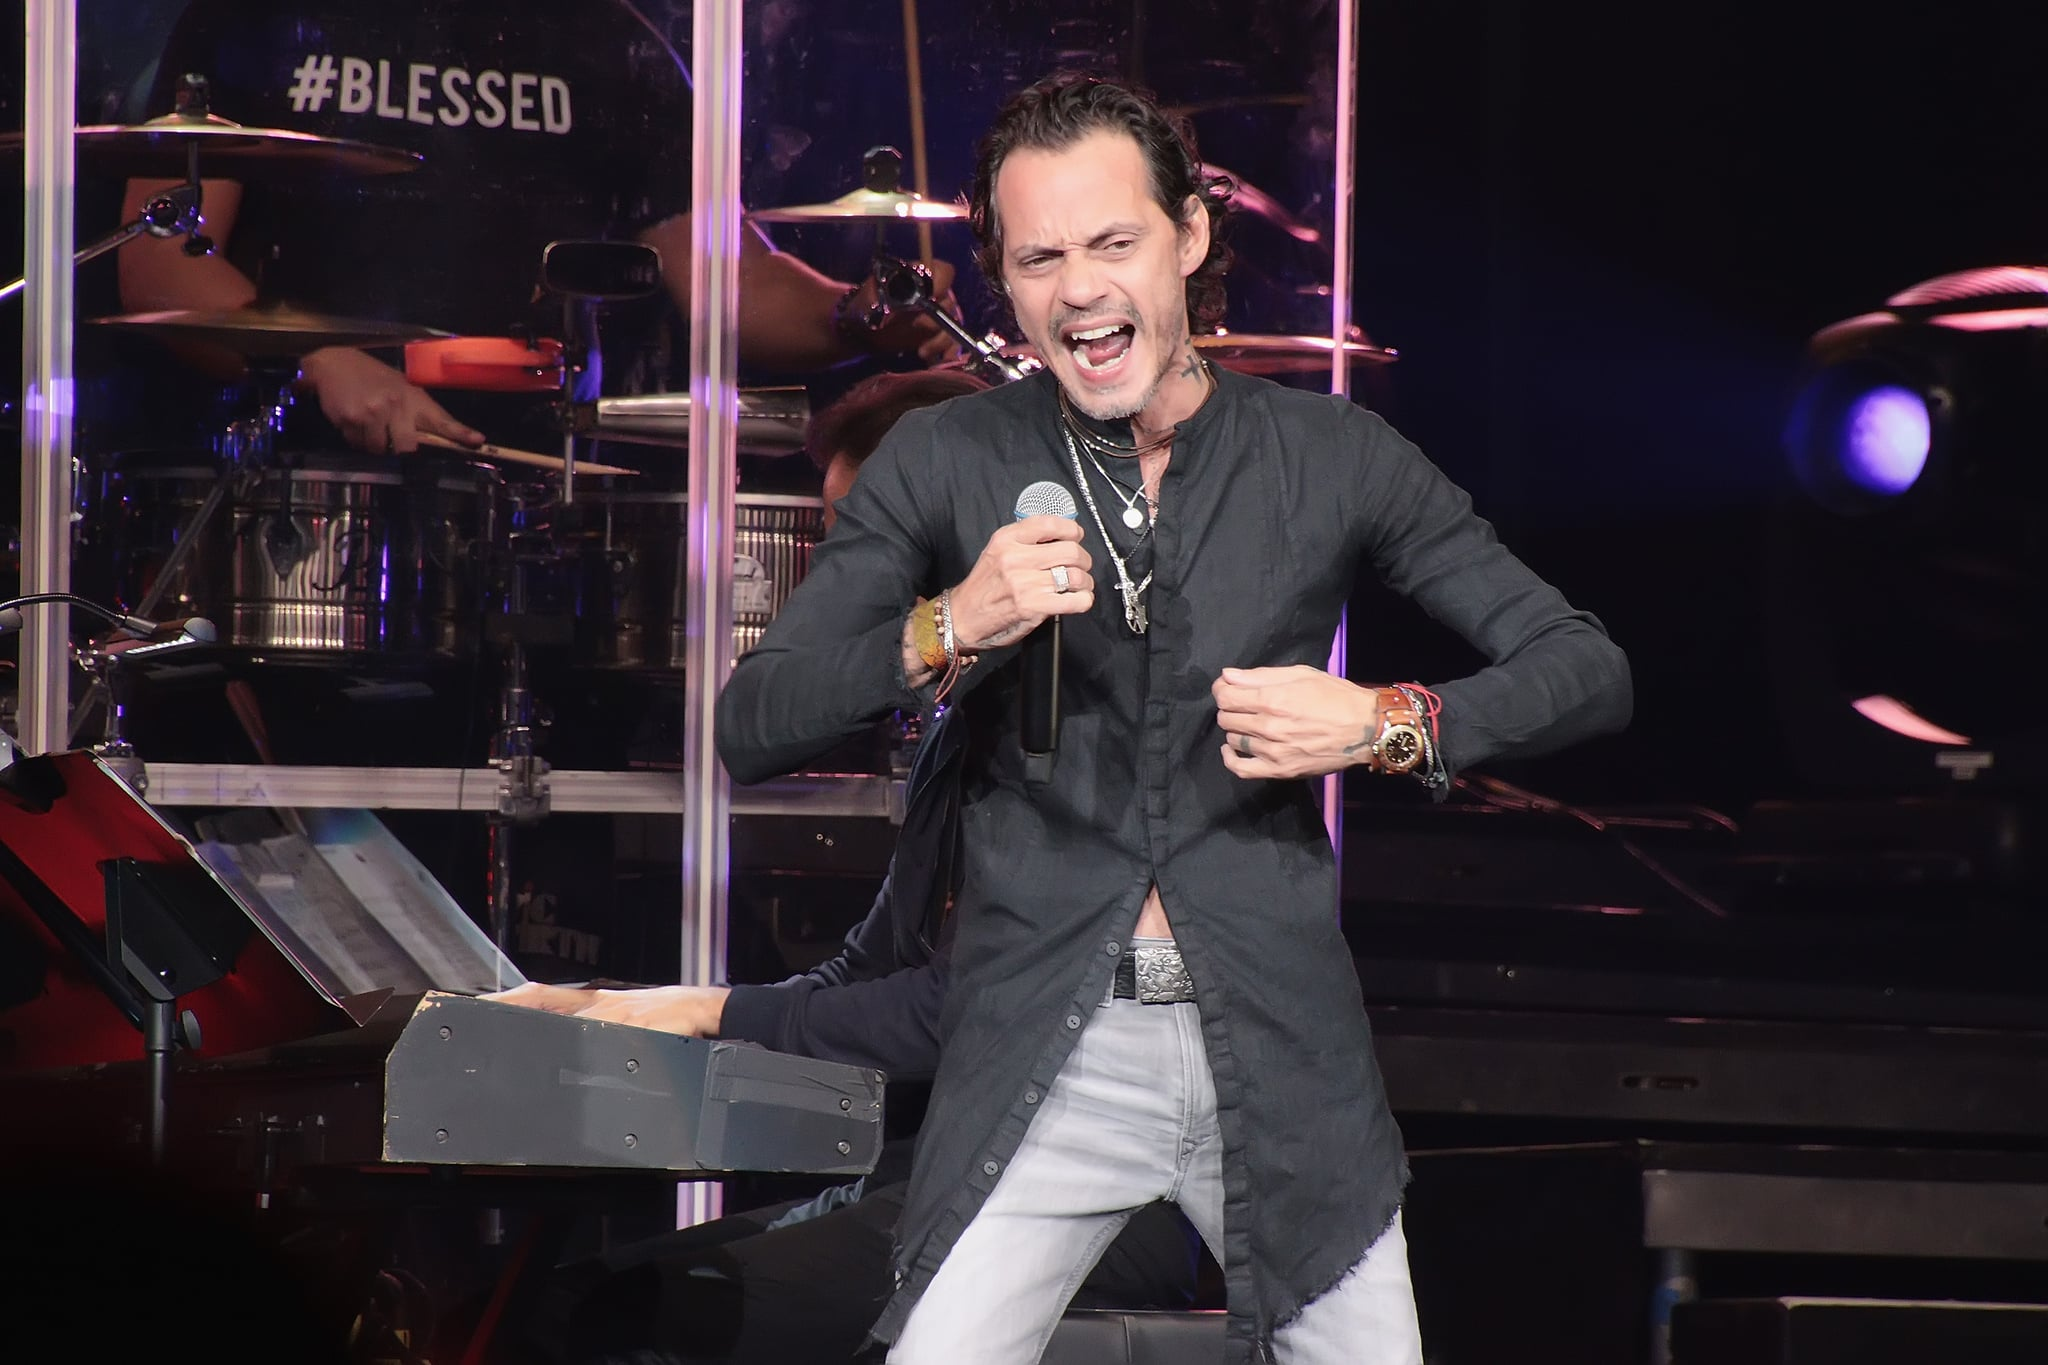 ATLANTIC CITY, NJ - JANUARY 25:  Marc Anthony performs in concert in the Etess Arena at Hard Rock Hotel & Casino Atlantic City on January 25, 2020 in Atlantic City, New Jersey. (Photo by Donald Kravitz/Getty Images)